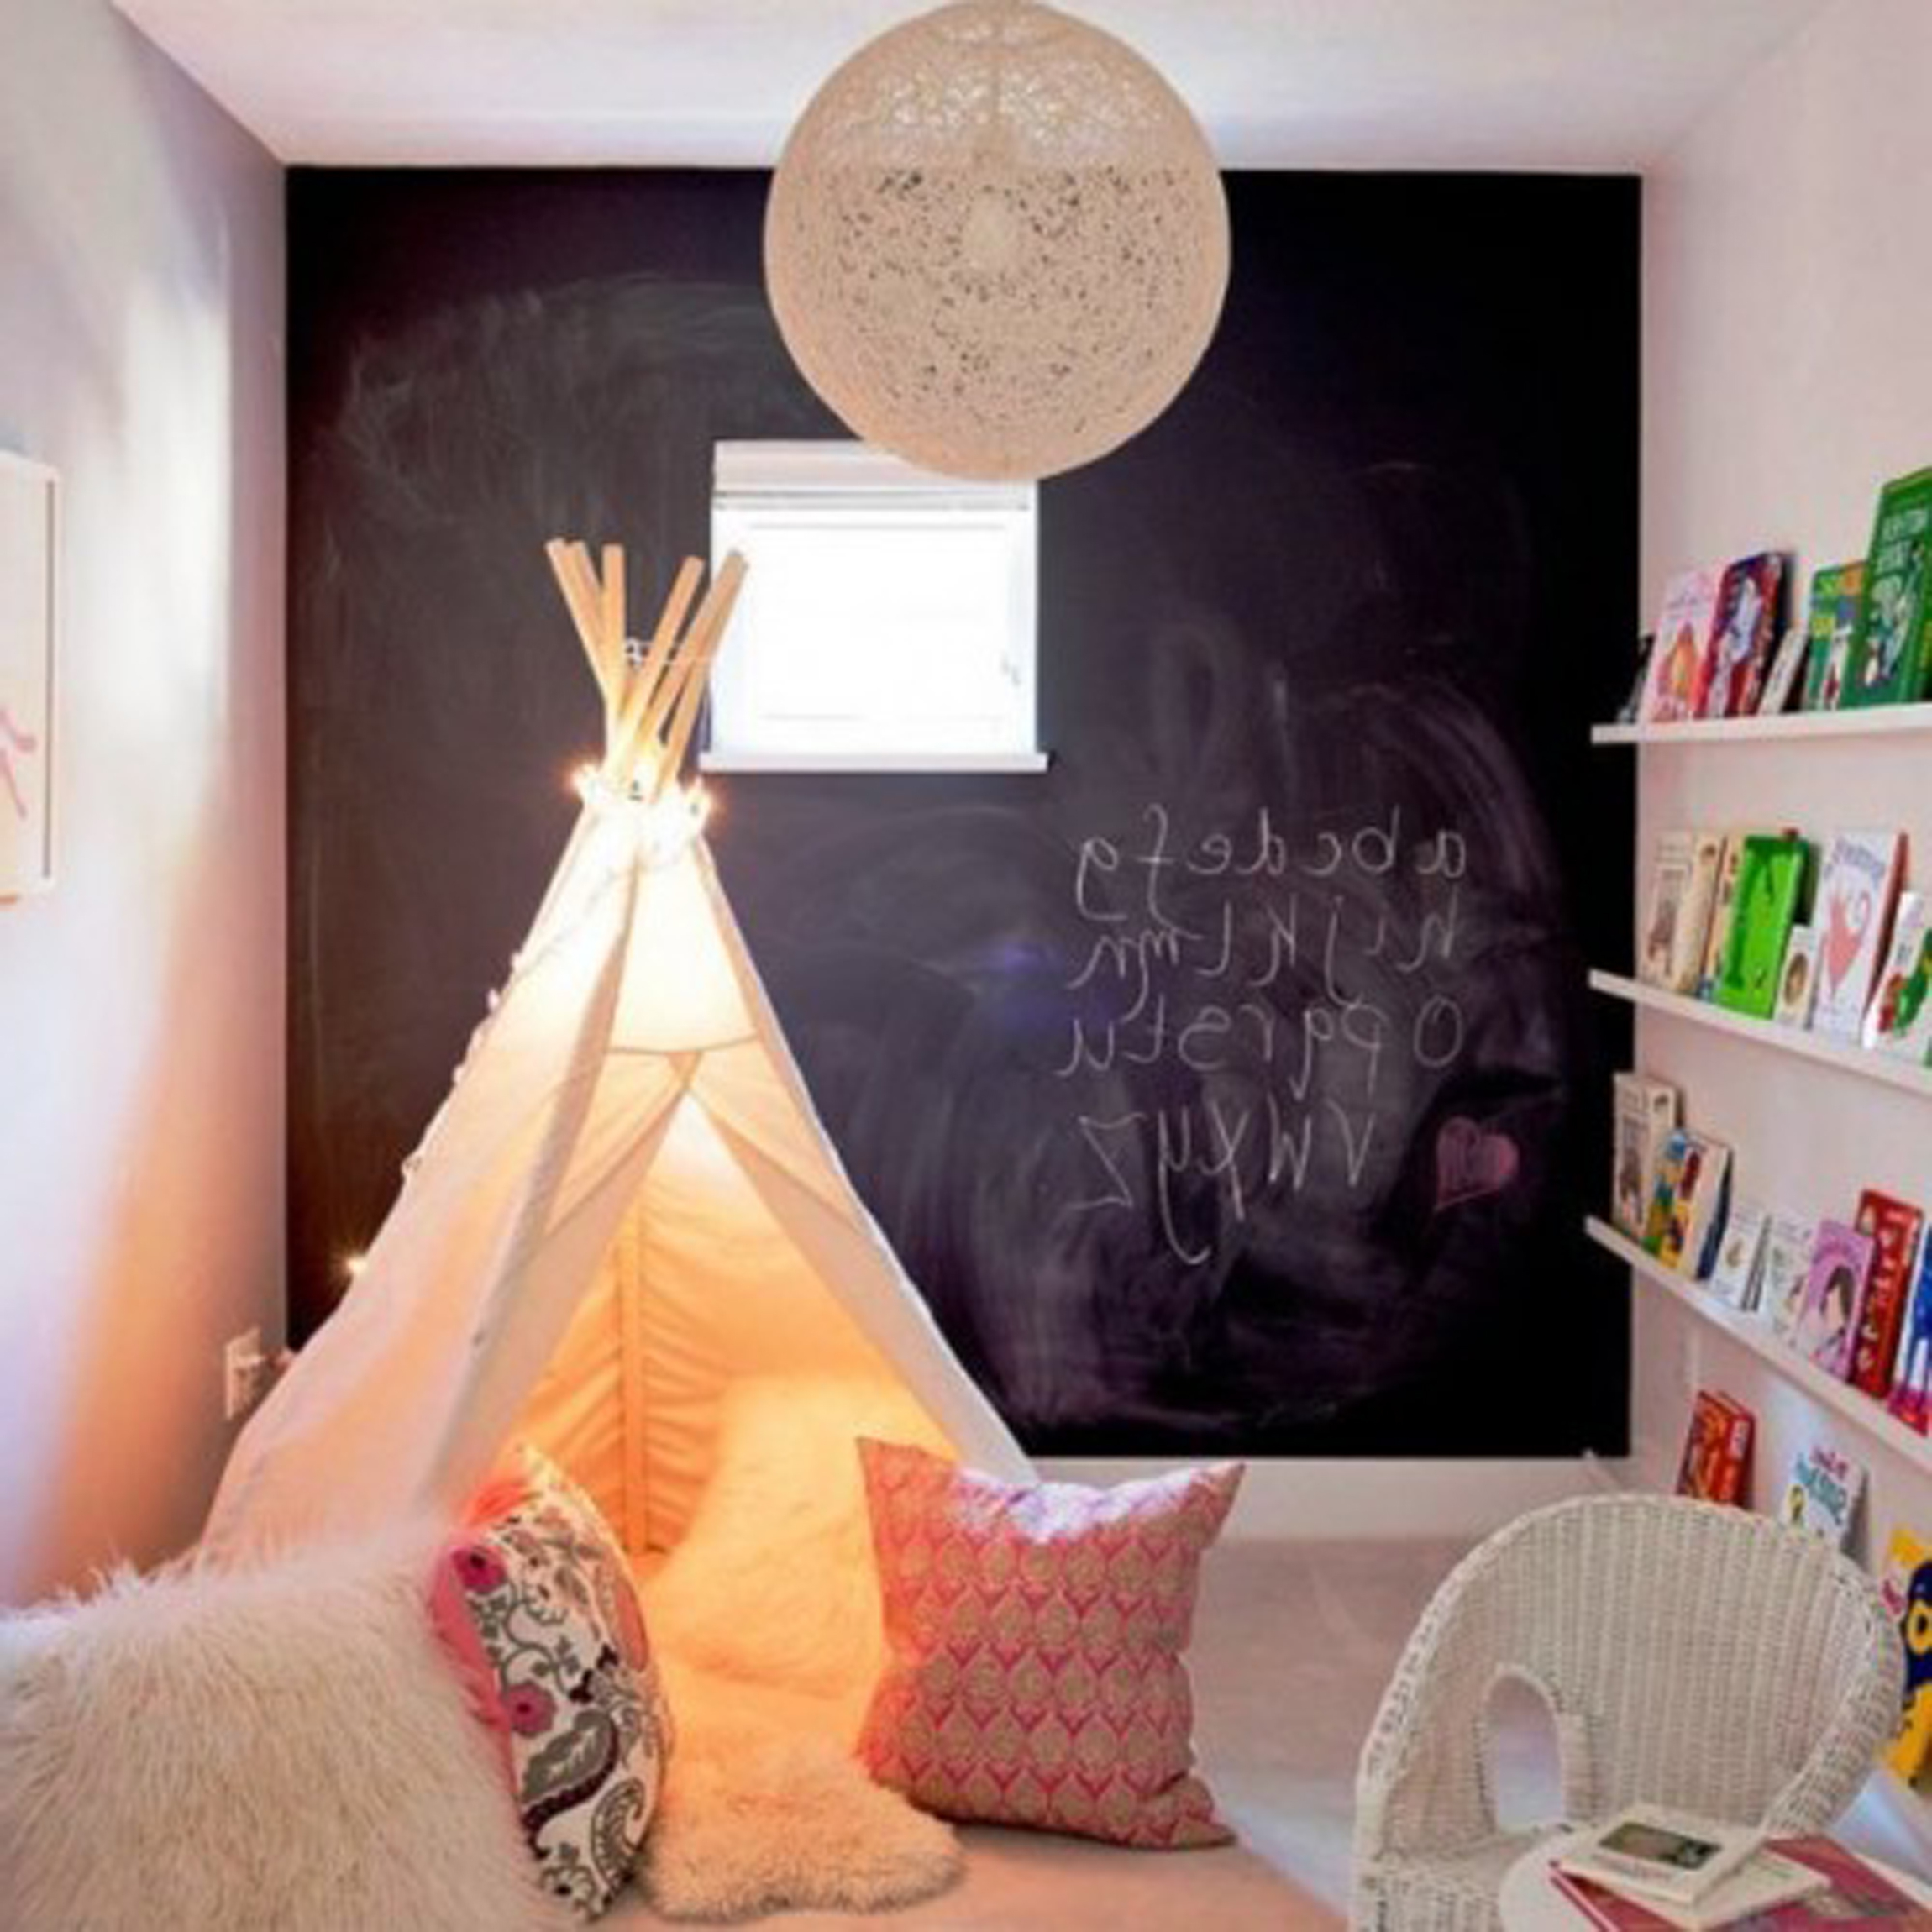 Kids Room Design With Cute Chalkboard Decoration Ideas Plus Entrancing Beige Kids Tent Model And Adorable Wall Shelves Plus Unique Pendant Lamp Design (View 15 of 28)